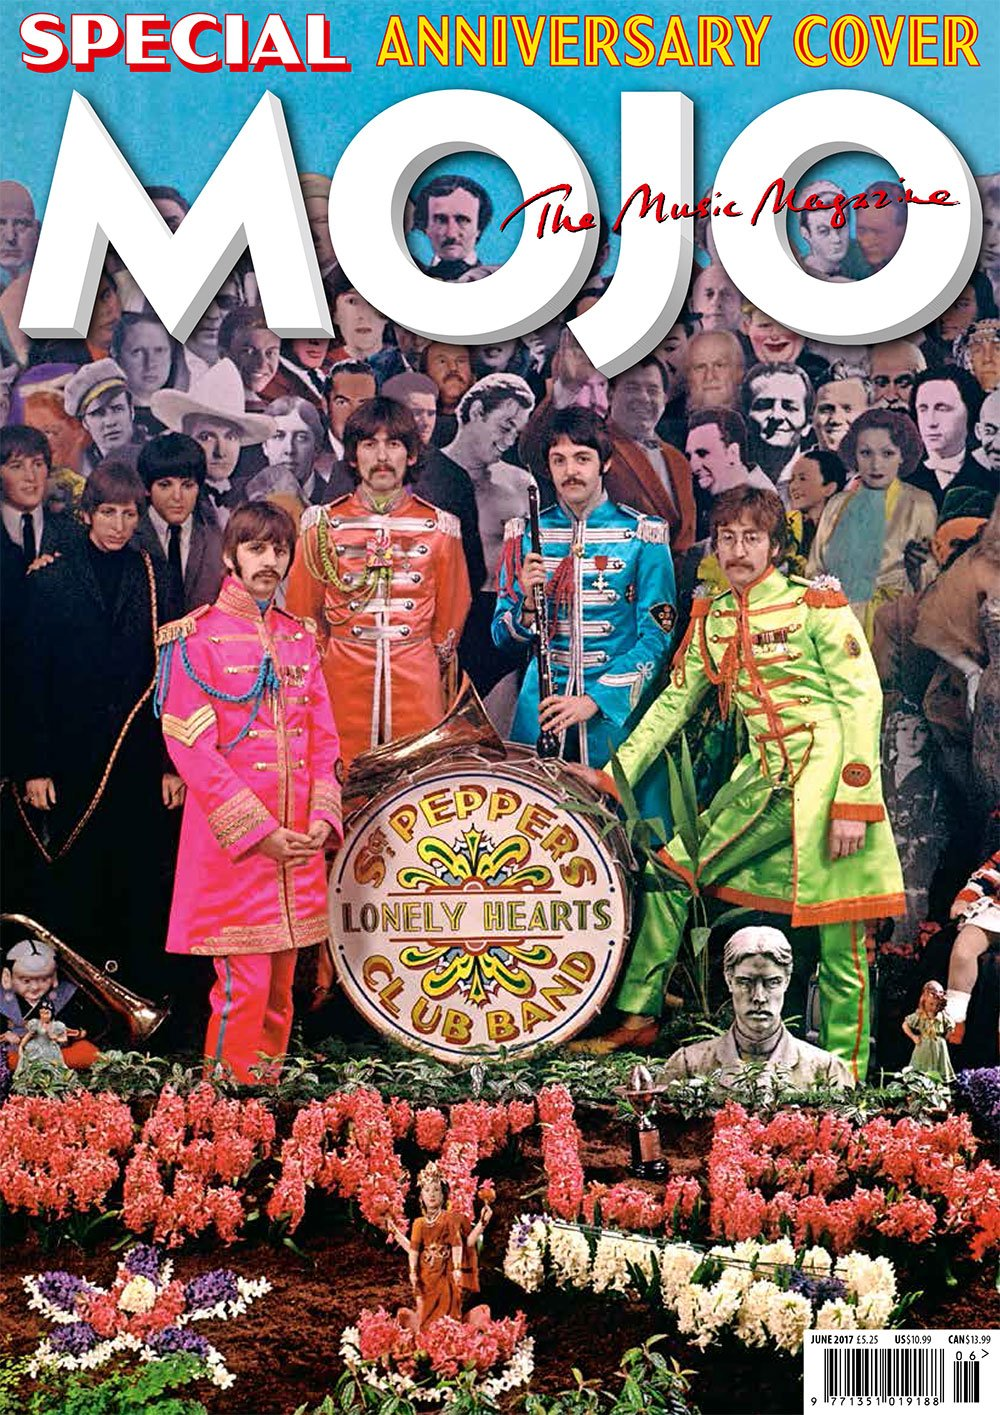 #sgtpepper @MOJOmagazine https://t.co/wAhtJXOLic